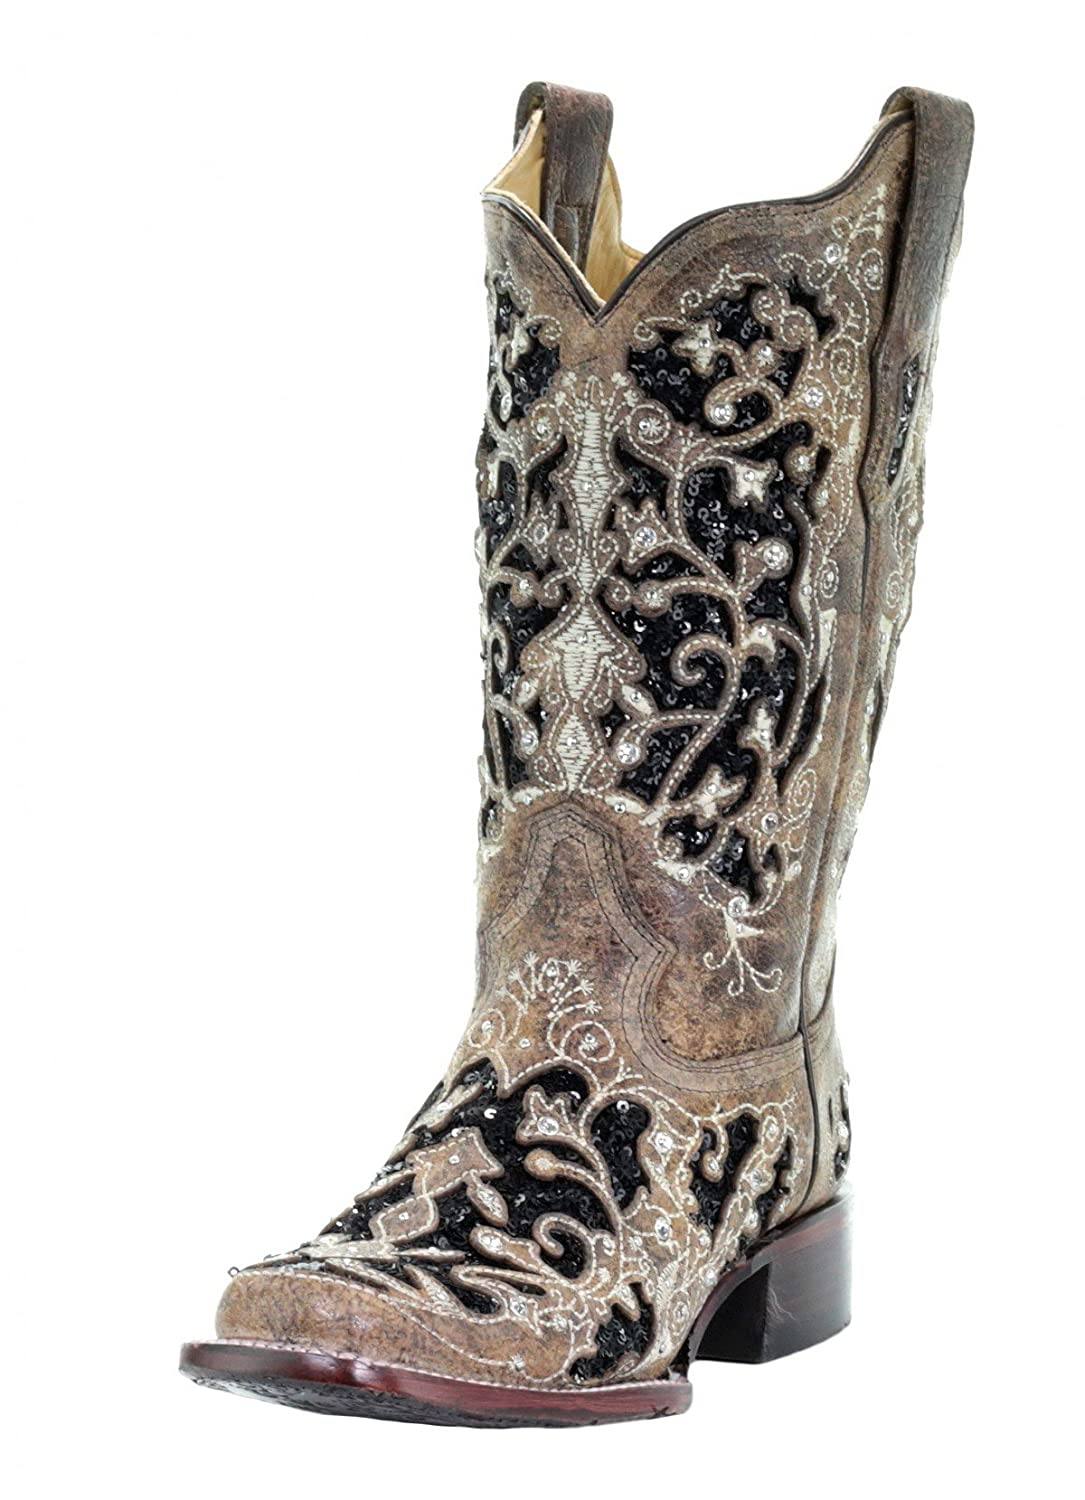 27e6a99170f CORRAL A3648 Floral Embroidered Glitter Inlay and Studs Square Toe Boots